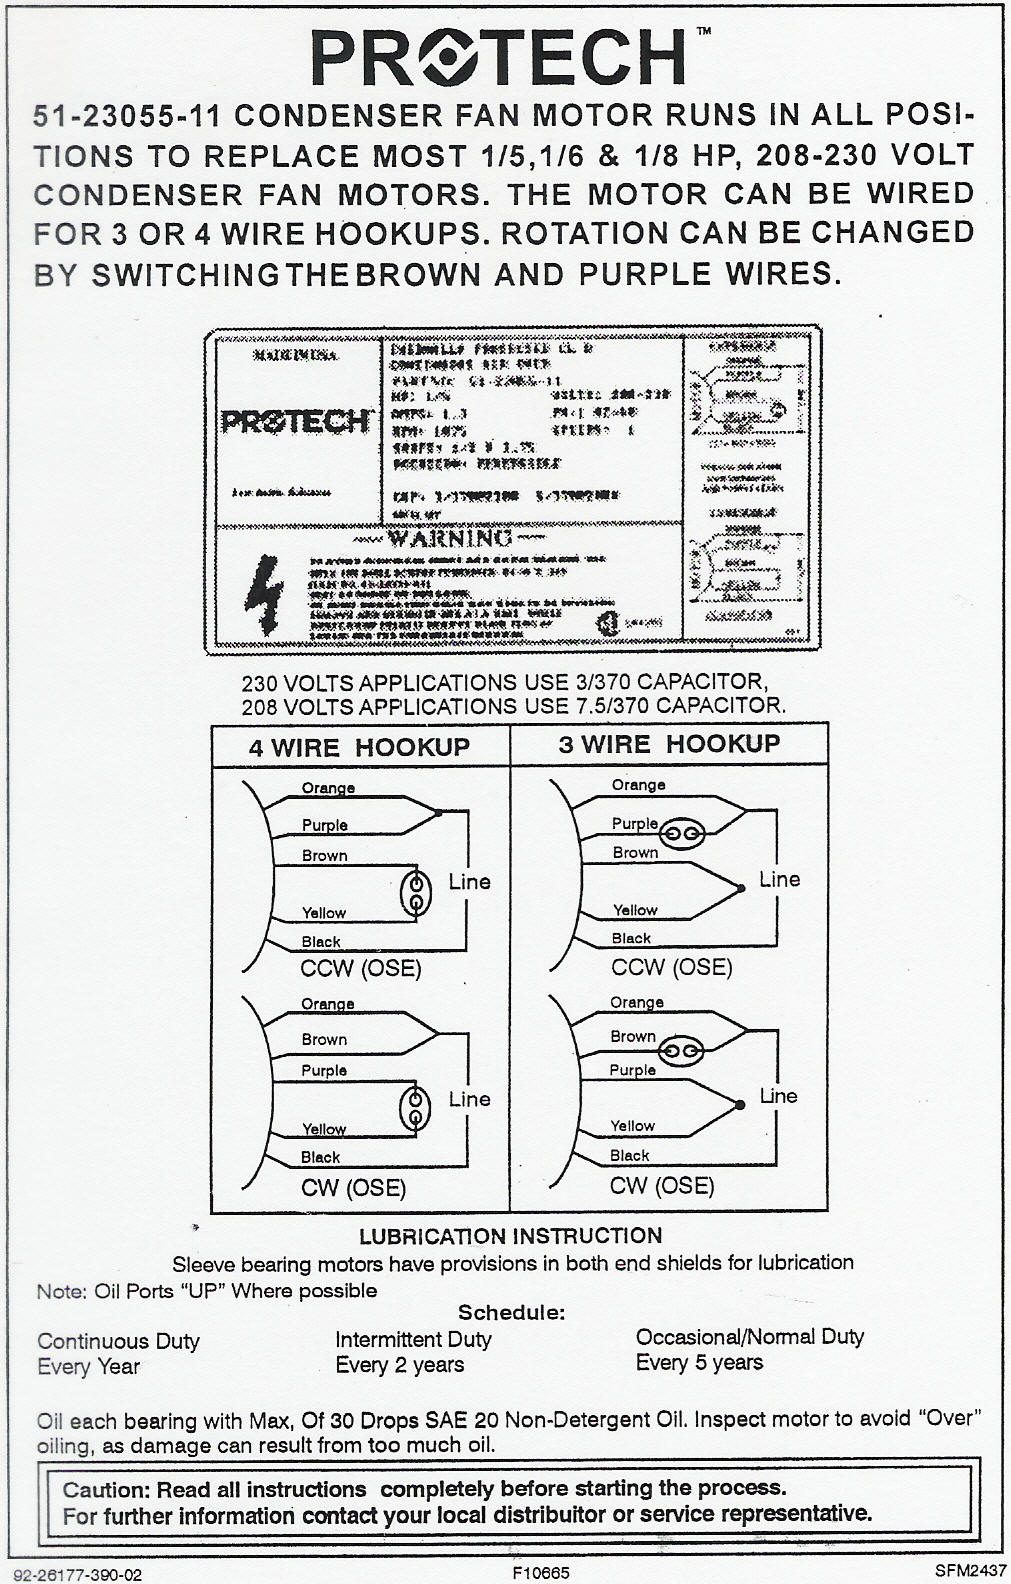 51 23055 11 wiring diagram rheem ruud condenser fan motor 51 23055 11 wiring diagram hvac fan motor wiring diagram at reclaimingppi.co